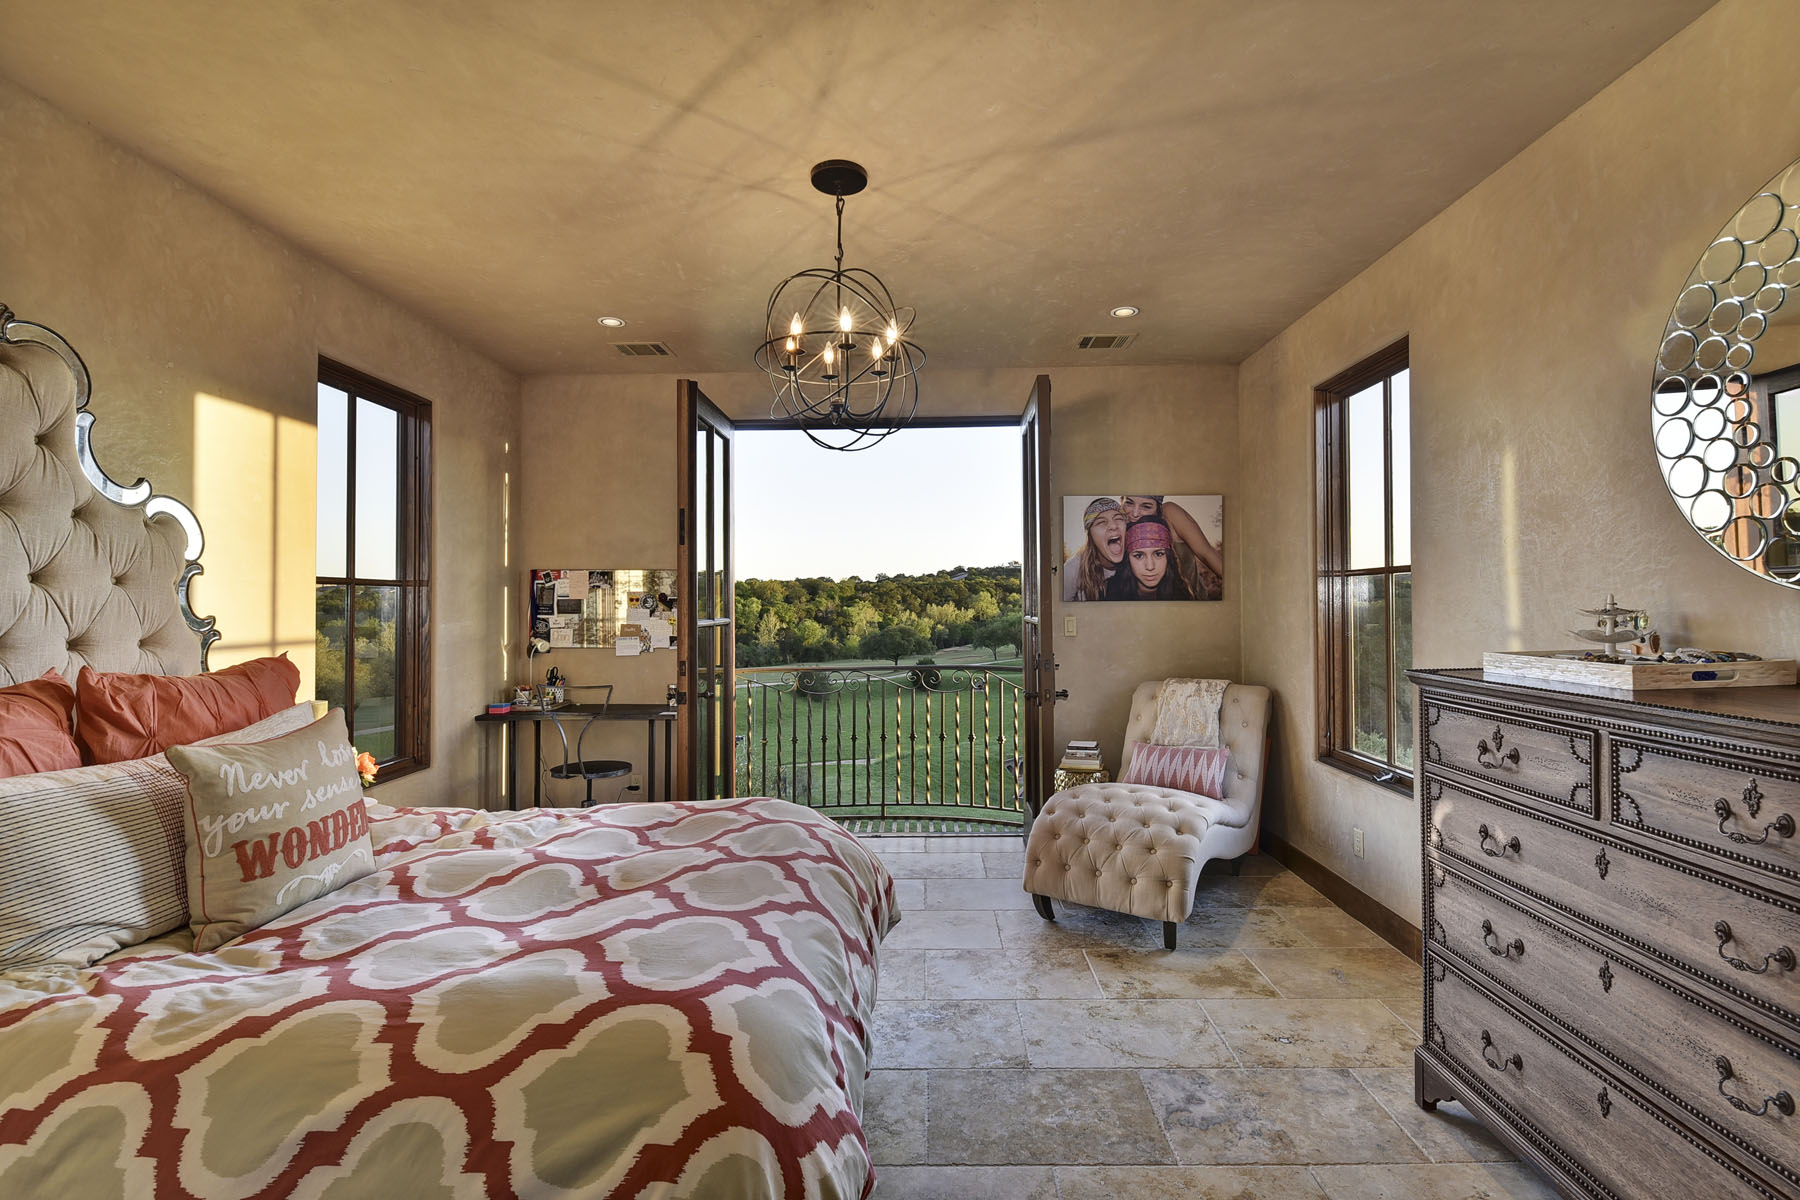 Additional photo for property listing at Old World Elegance 8533 Calera Dr Austin, Texas 78735 United States